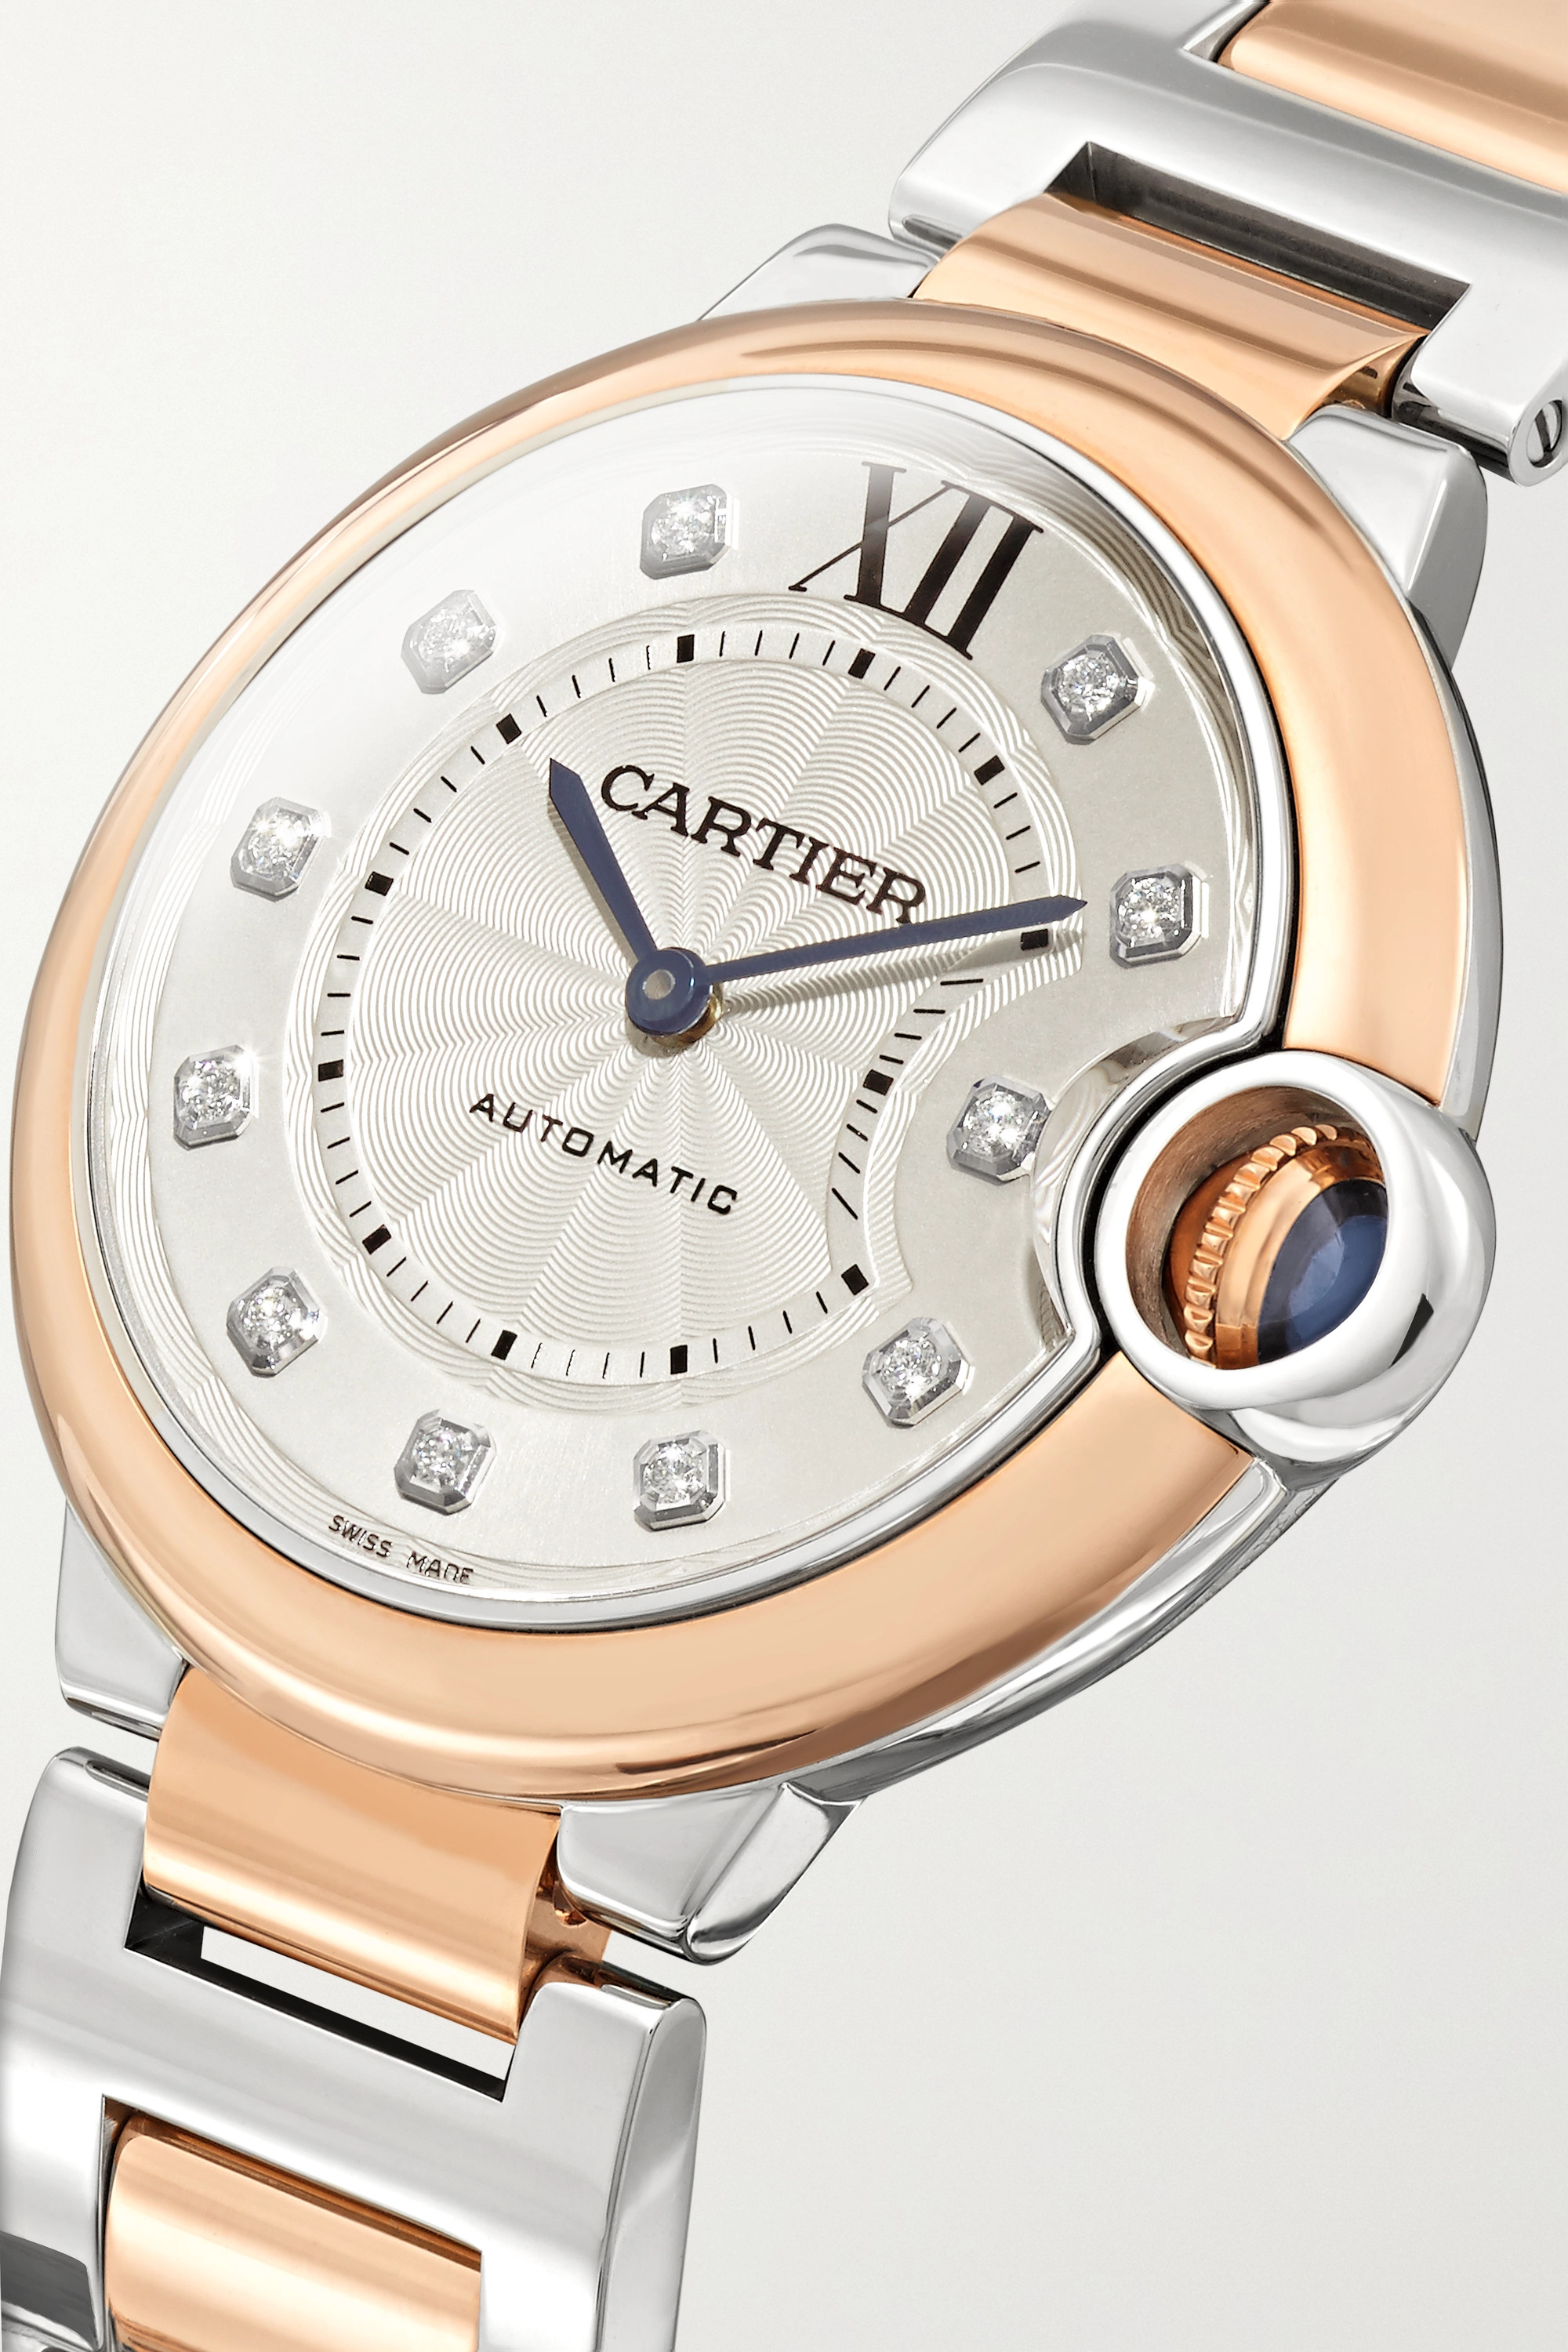 CARTIER Ballon Bleu de Cartier Automatic 36mm 18-karat rose gold, stainless steel and diamond watch